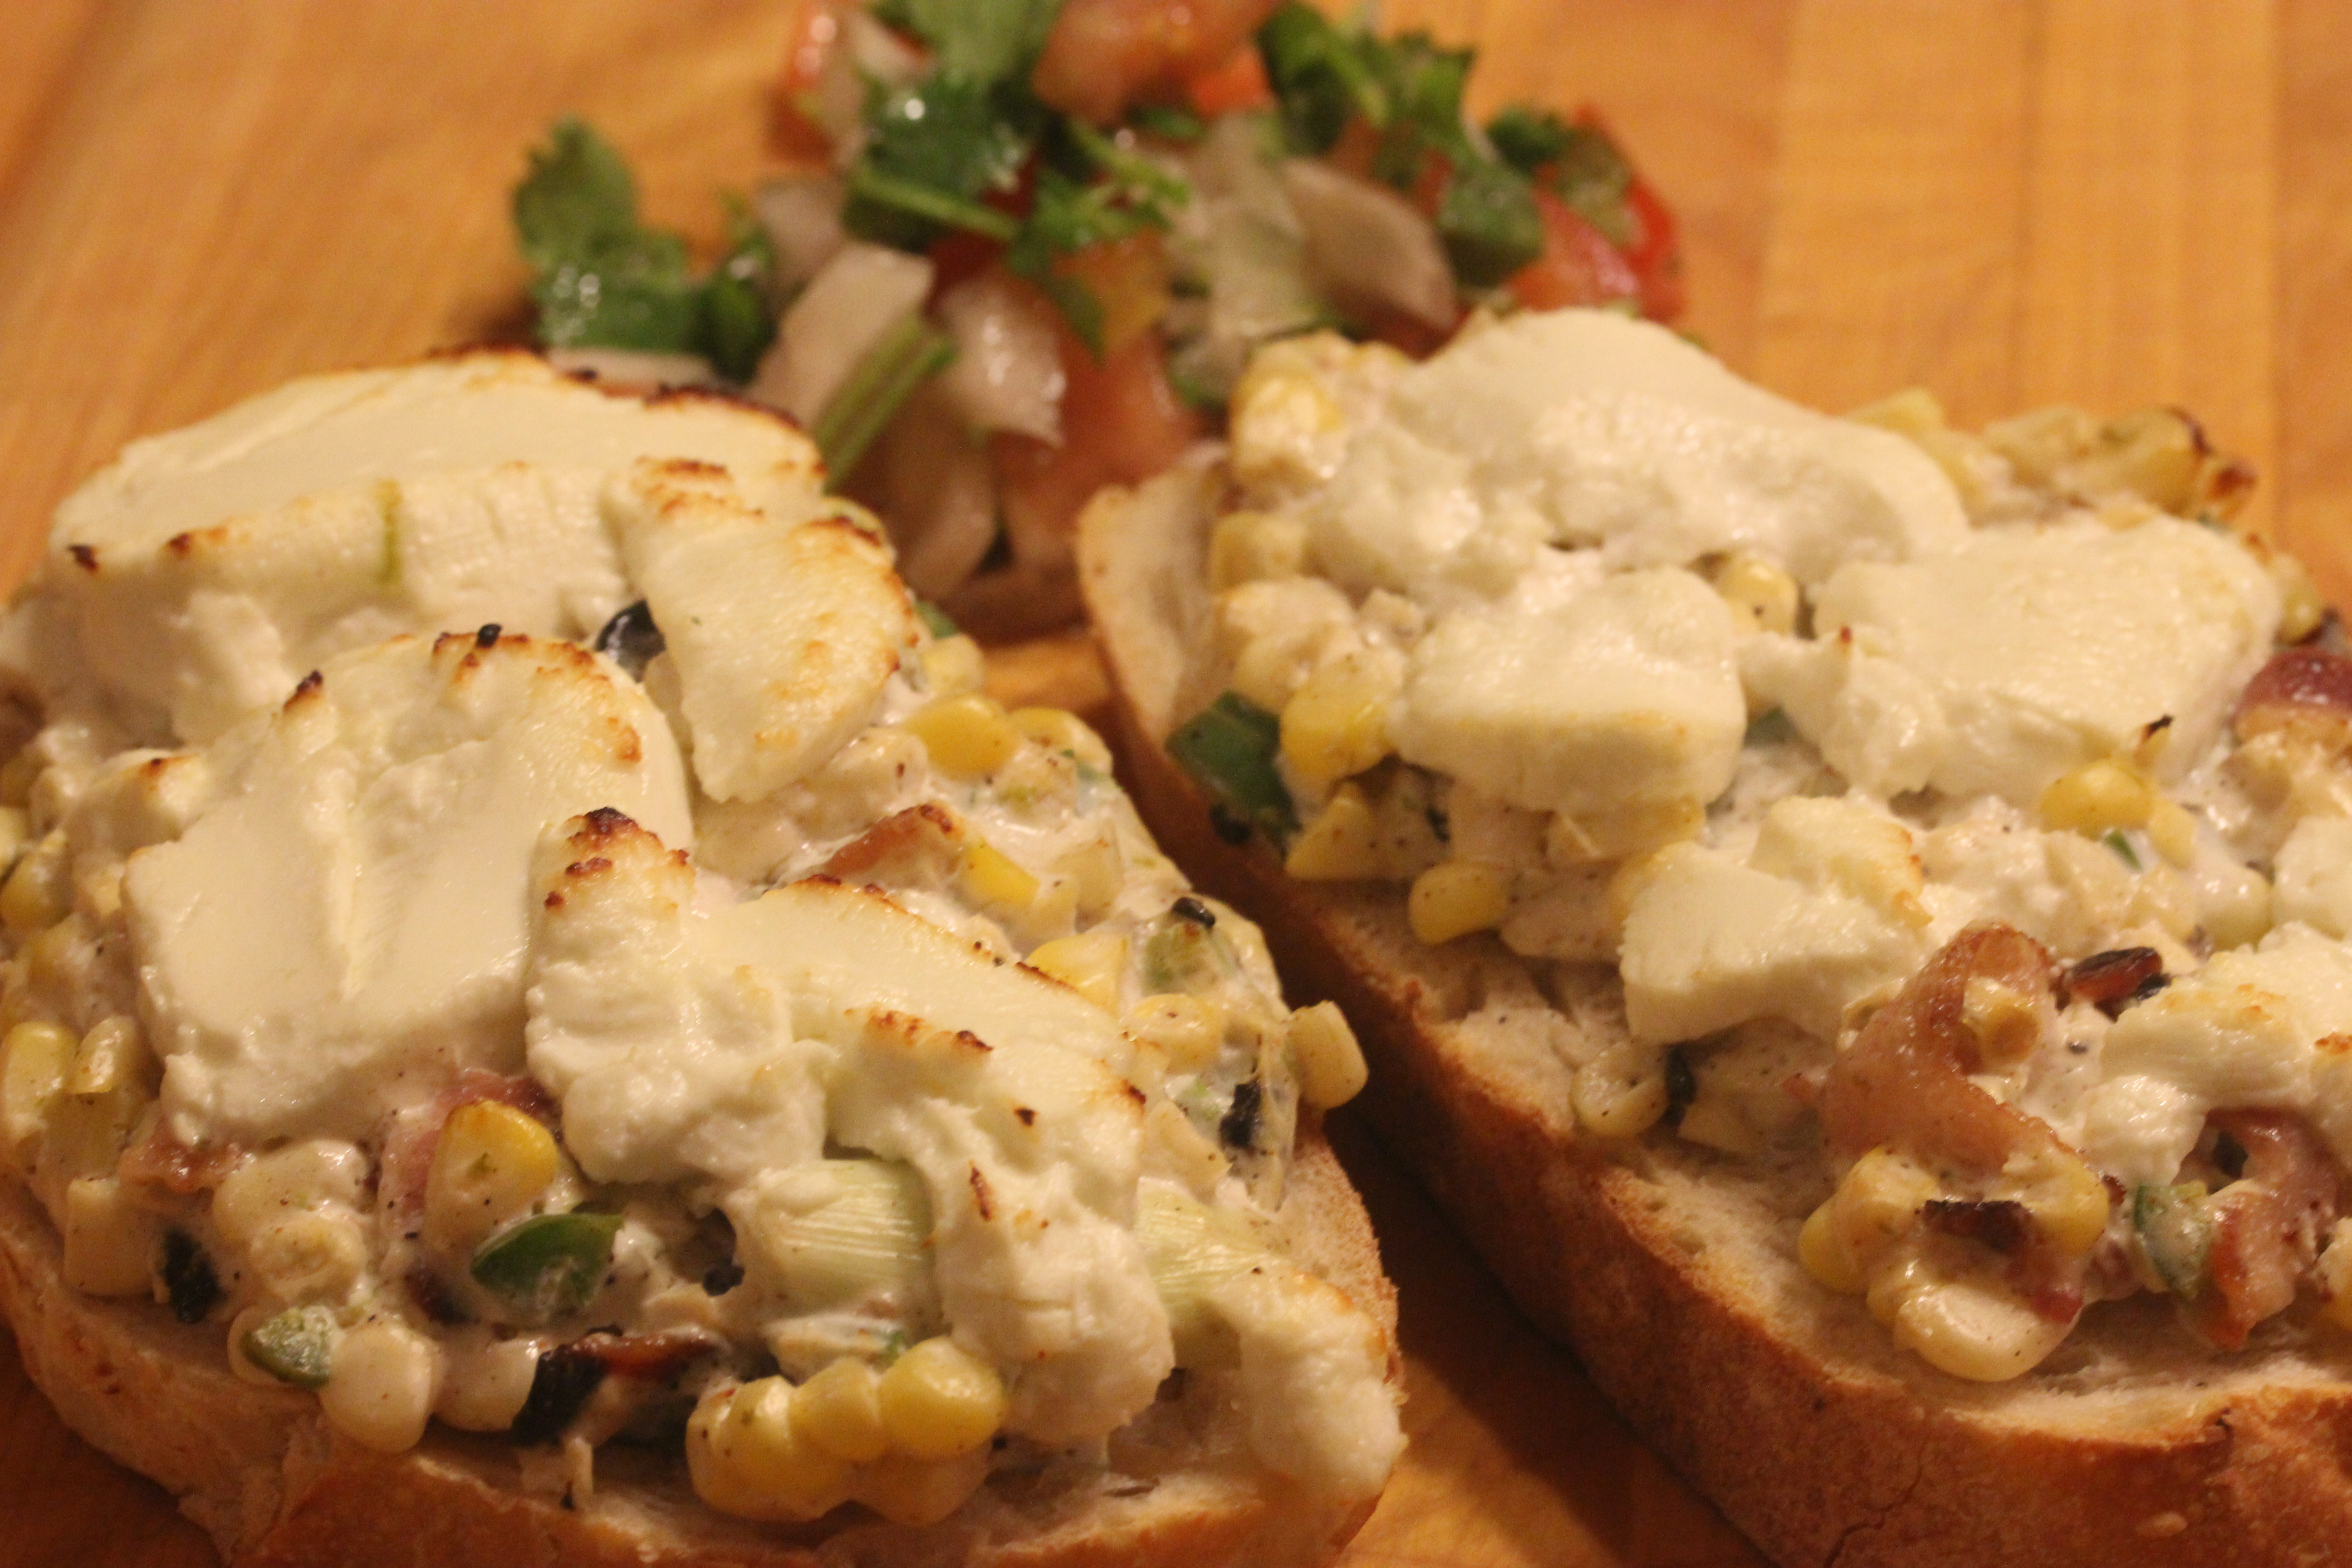 TBT Recipe: Corn, Jalapeño and Goat Cheese Tartine from Le Pain Quotidien